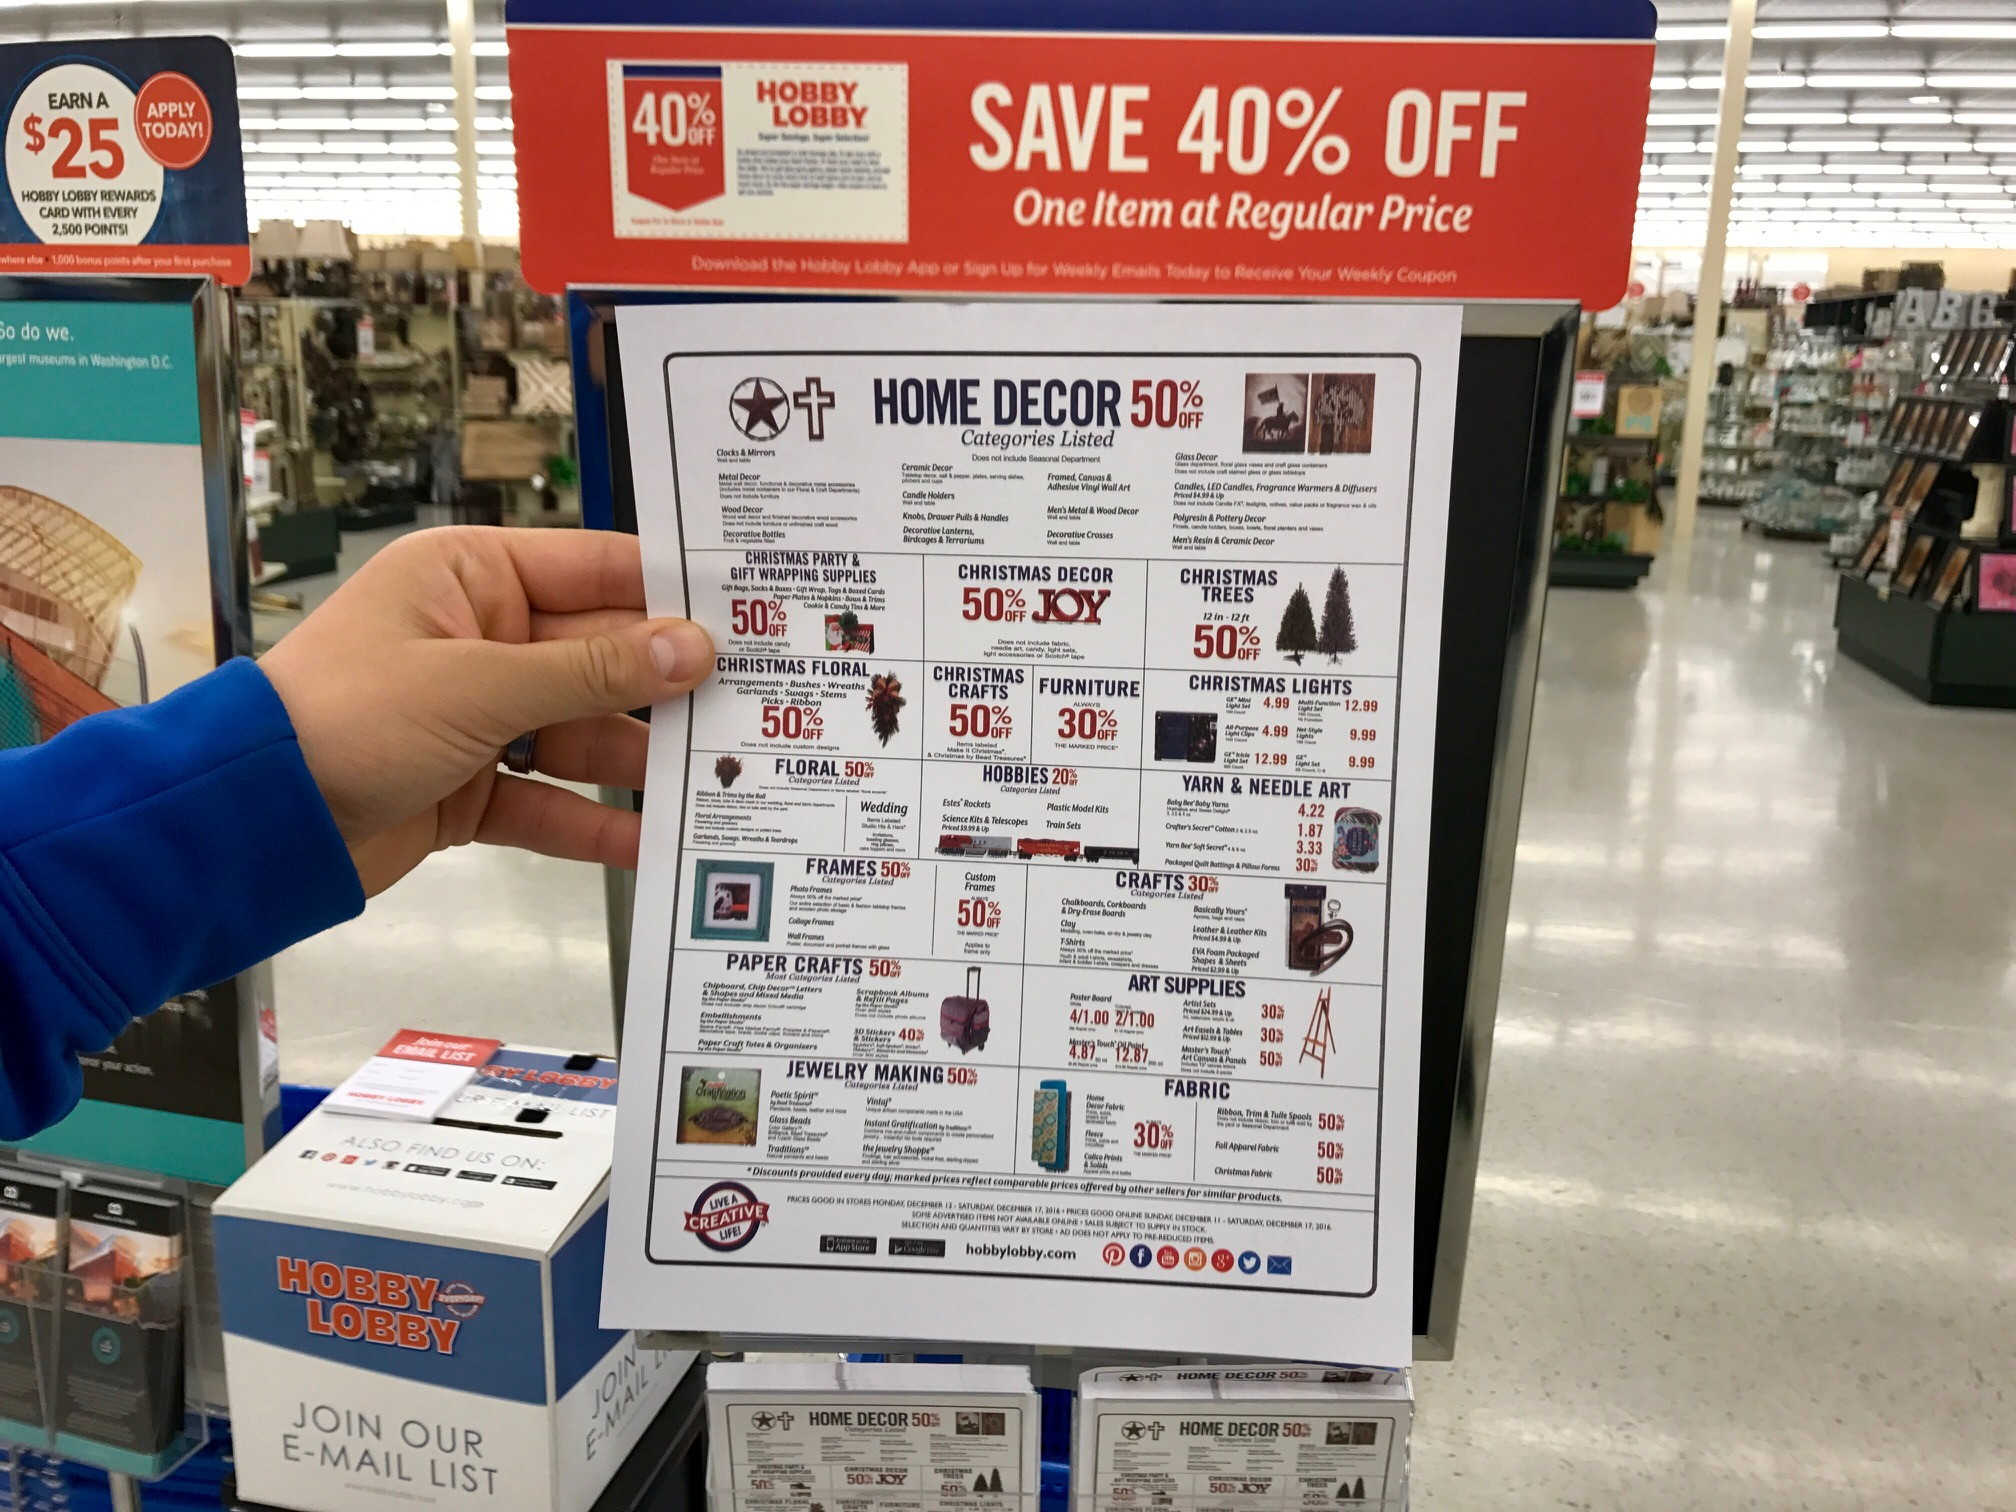 Hobby lobby craft bags - How To Know When Every Item At Hobby Lobby Goes On Sale The Krazy Coupon Lady